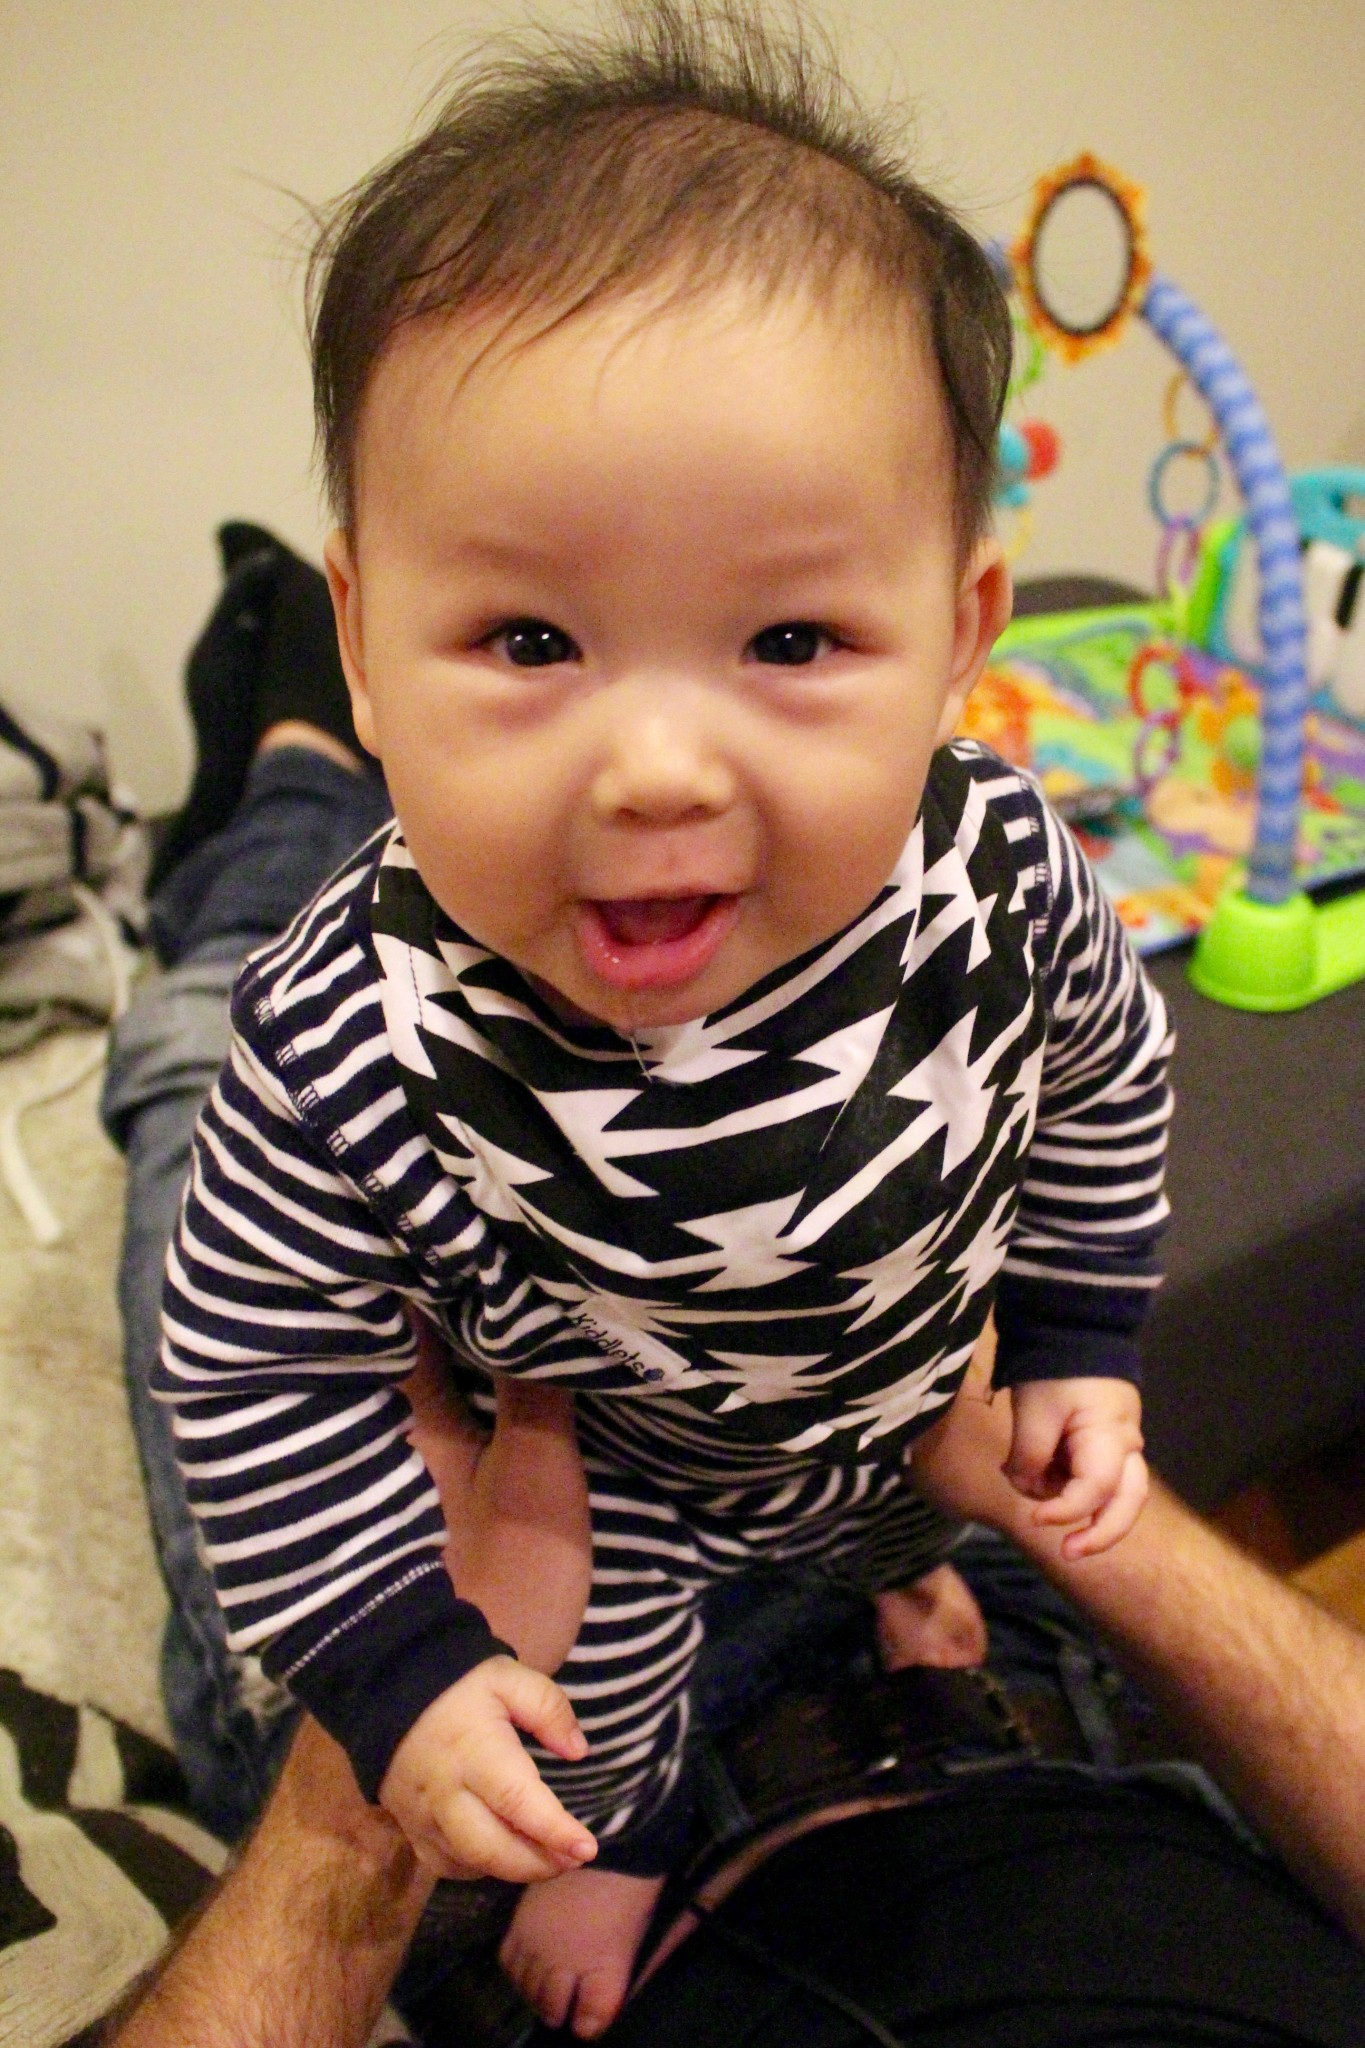 20151101_Kiddlets_Bandana